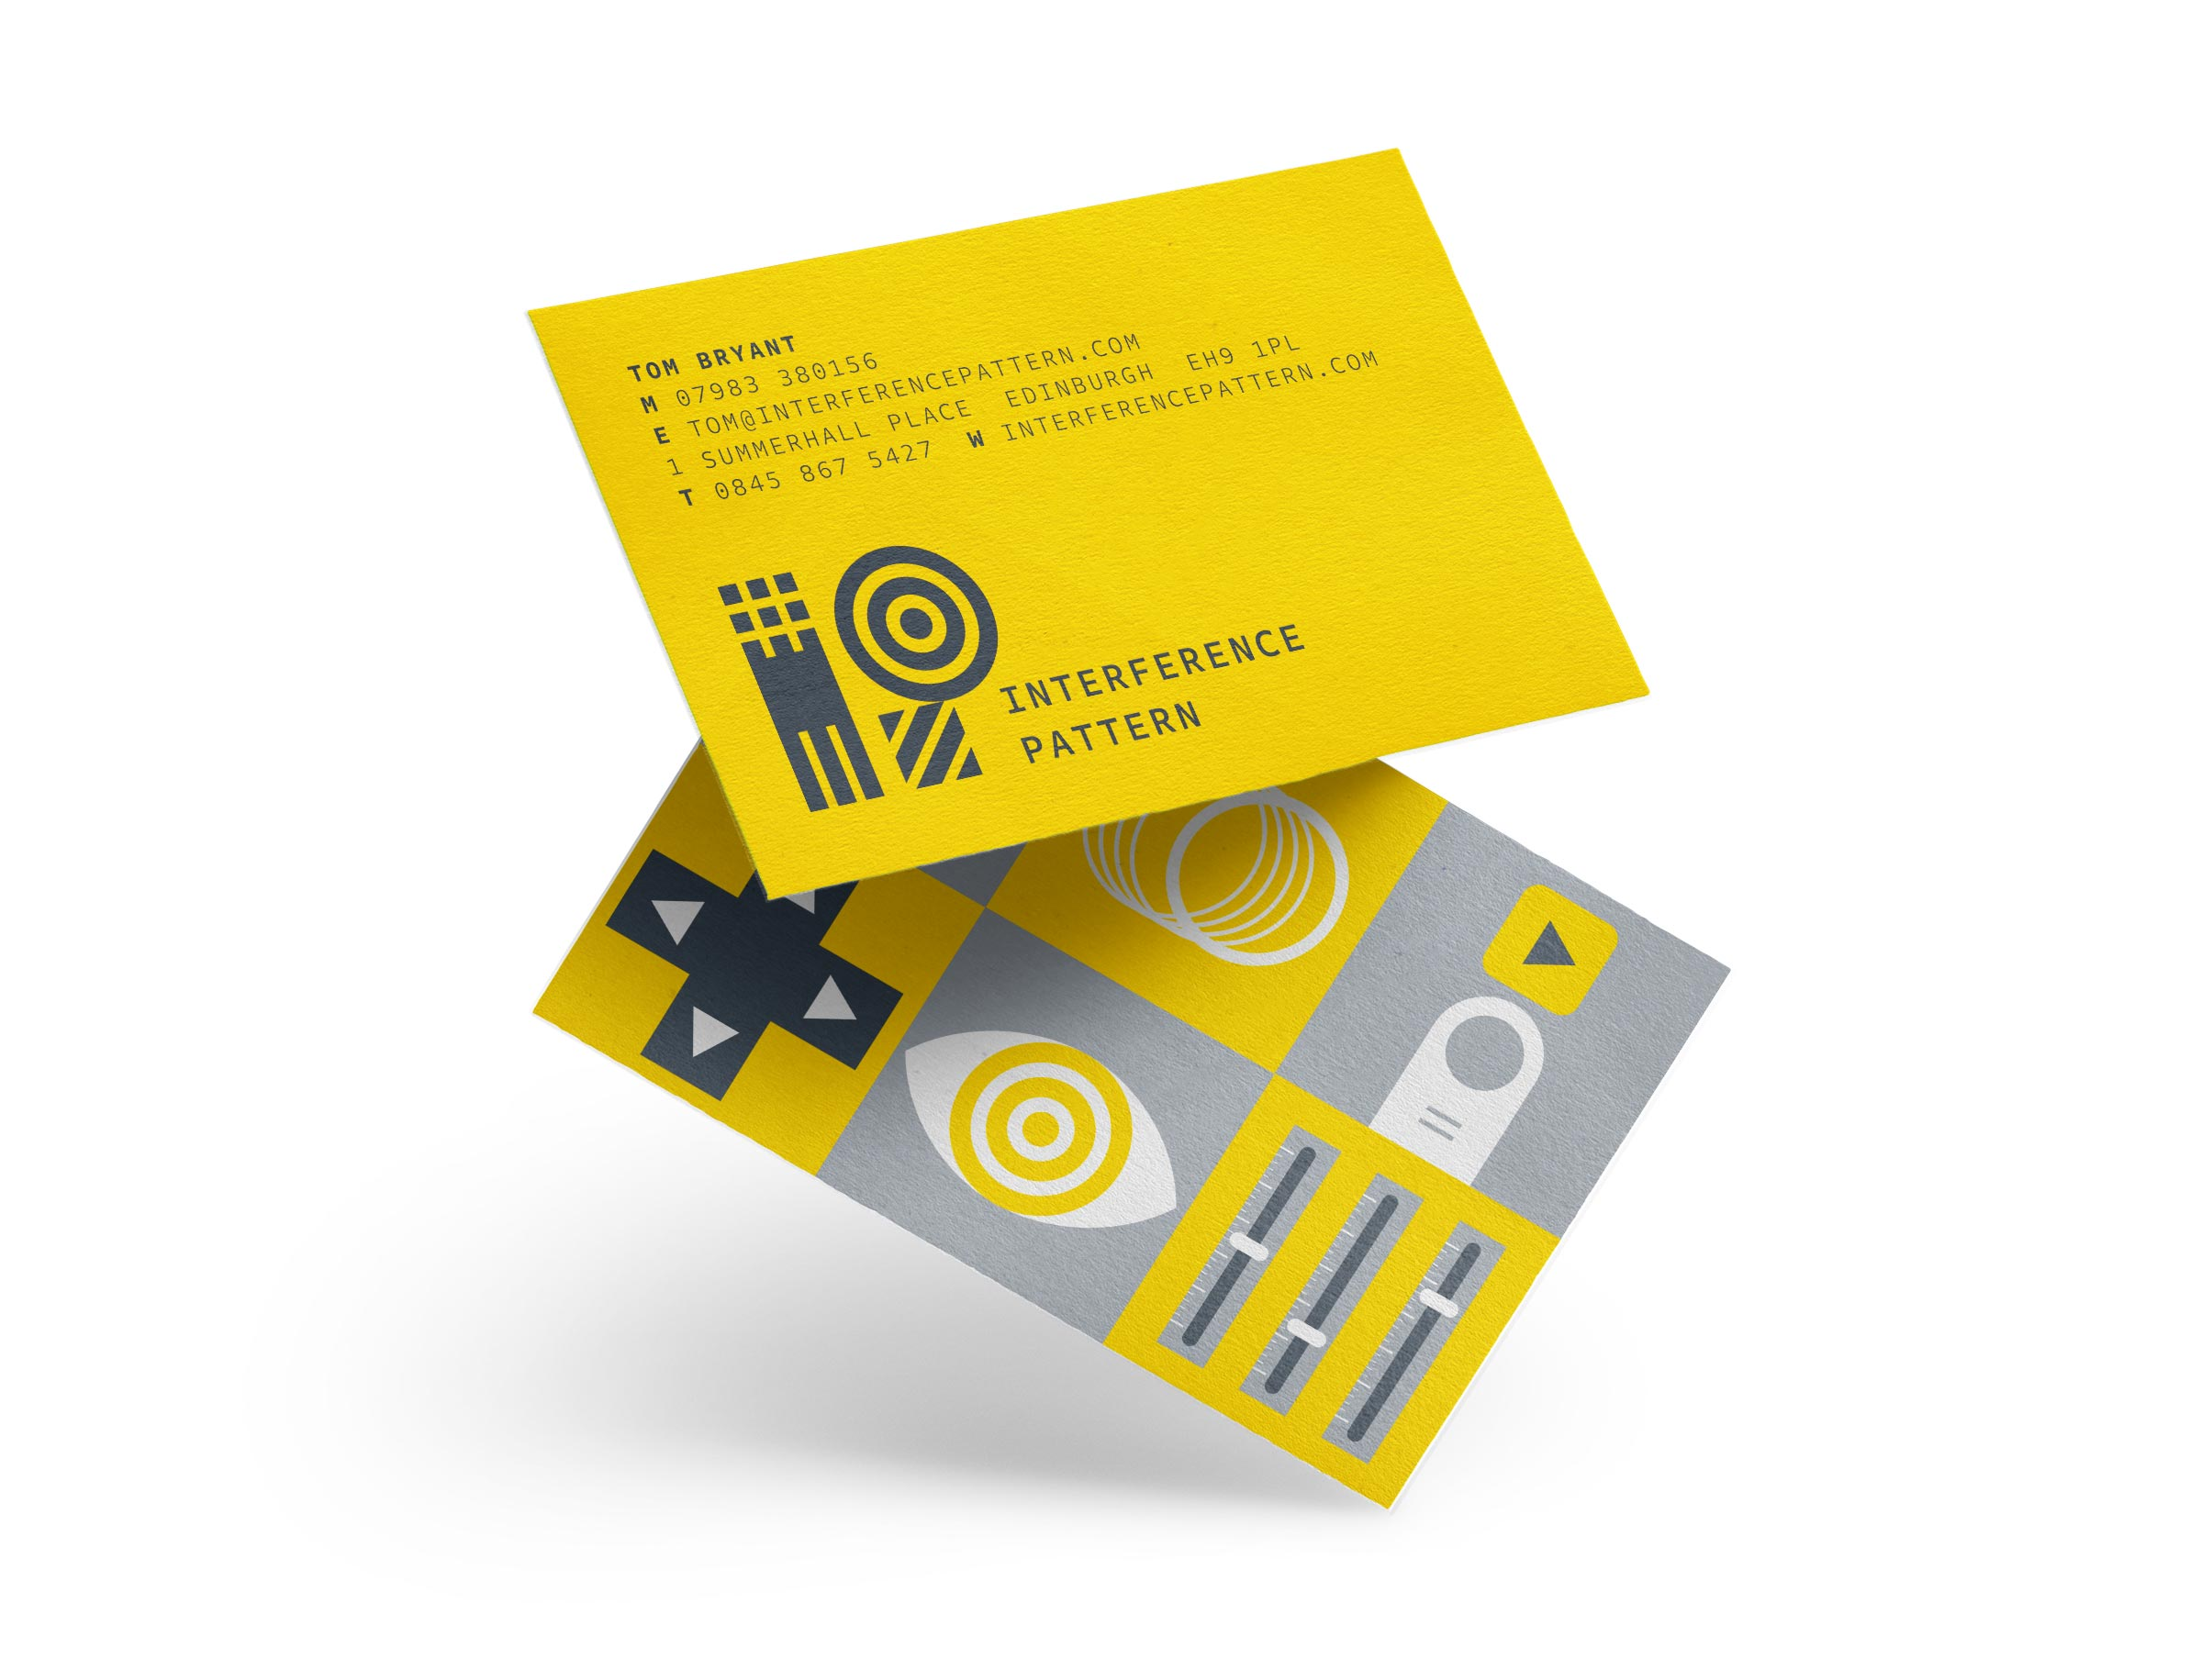 Interference Pattern animation studio business cards designed by Monumentum Brands